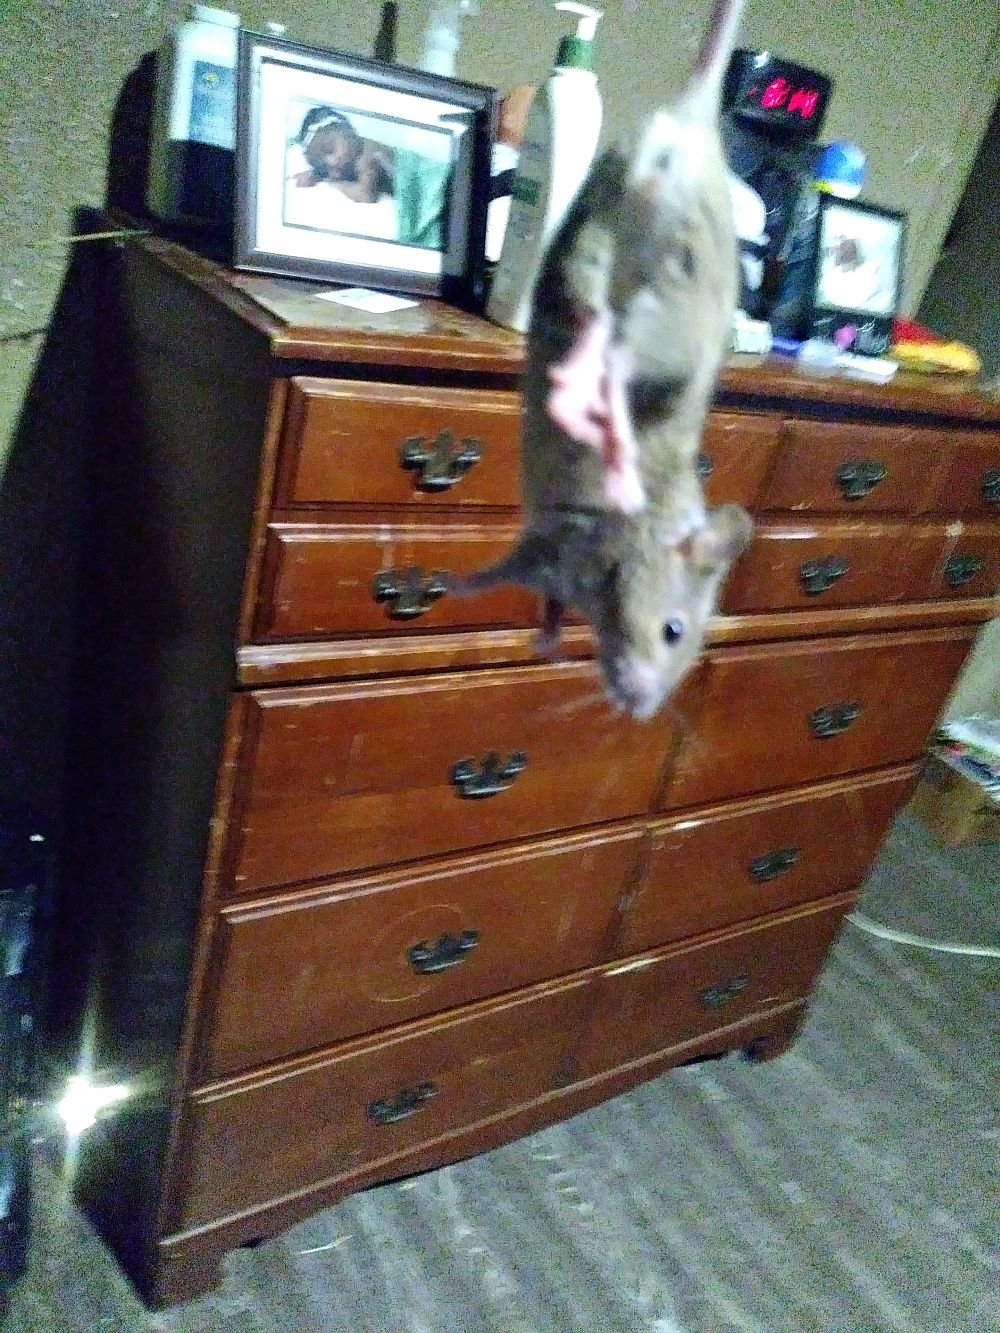 One of the rats Courtney Waweru said she caught in her Holmes Street apartment. Tre Black said they are trying to get rid of the rodents.